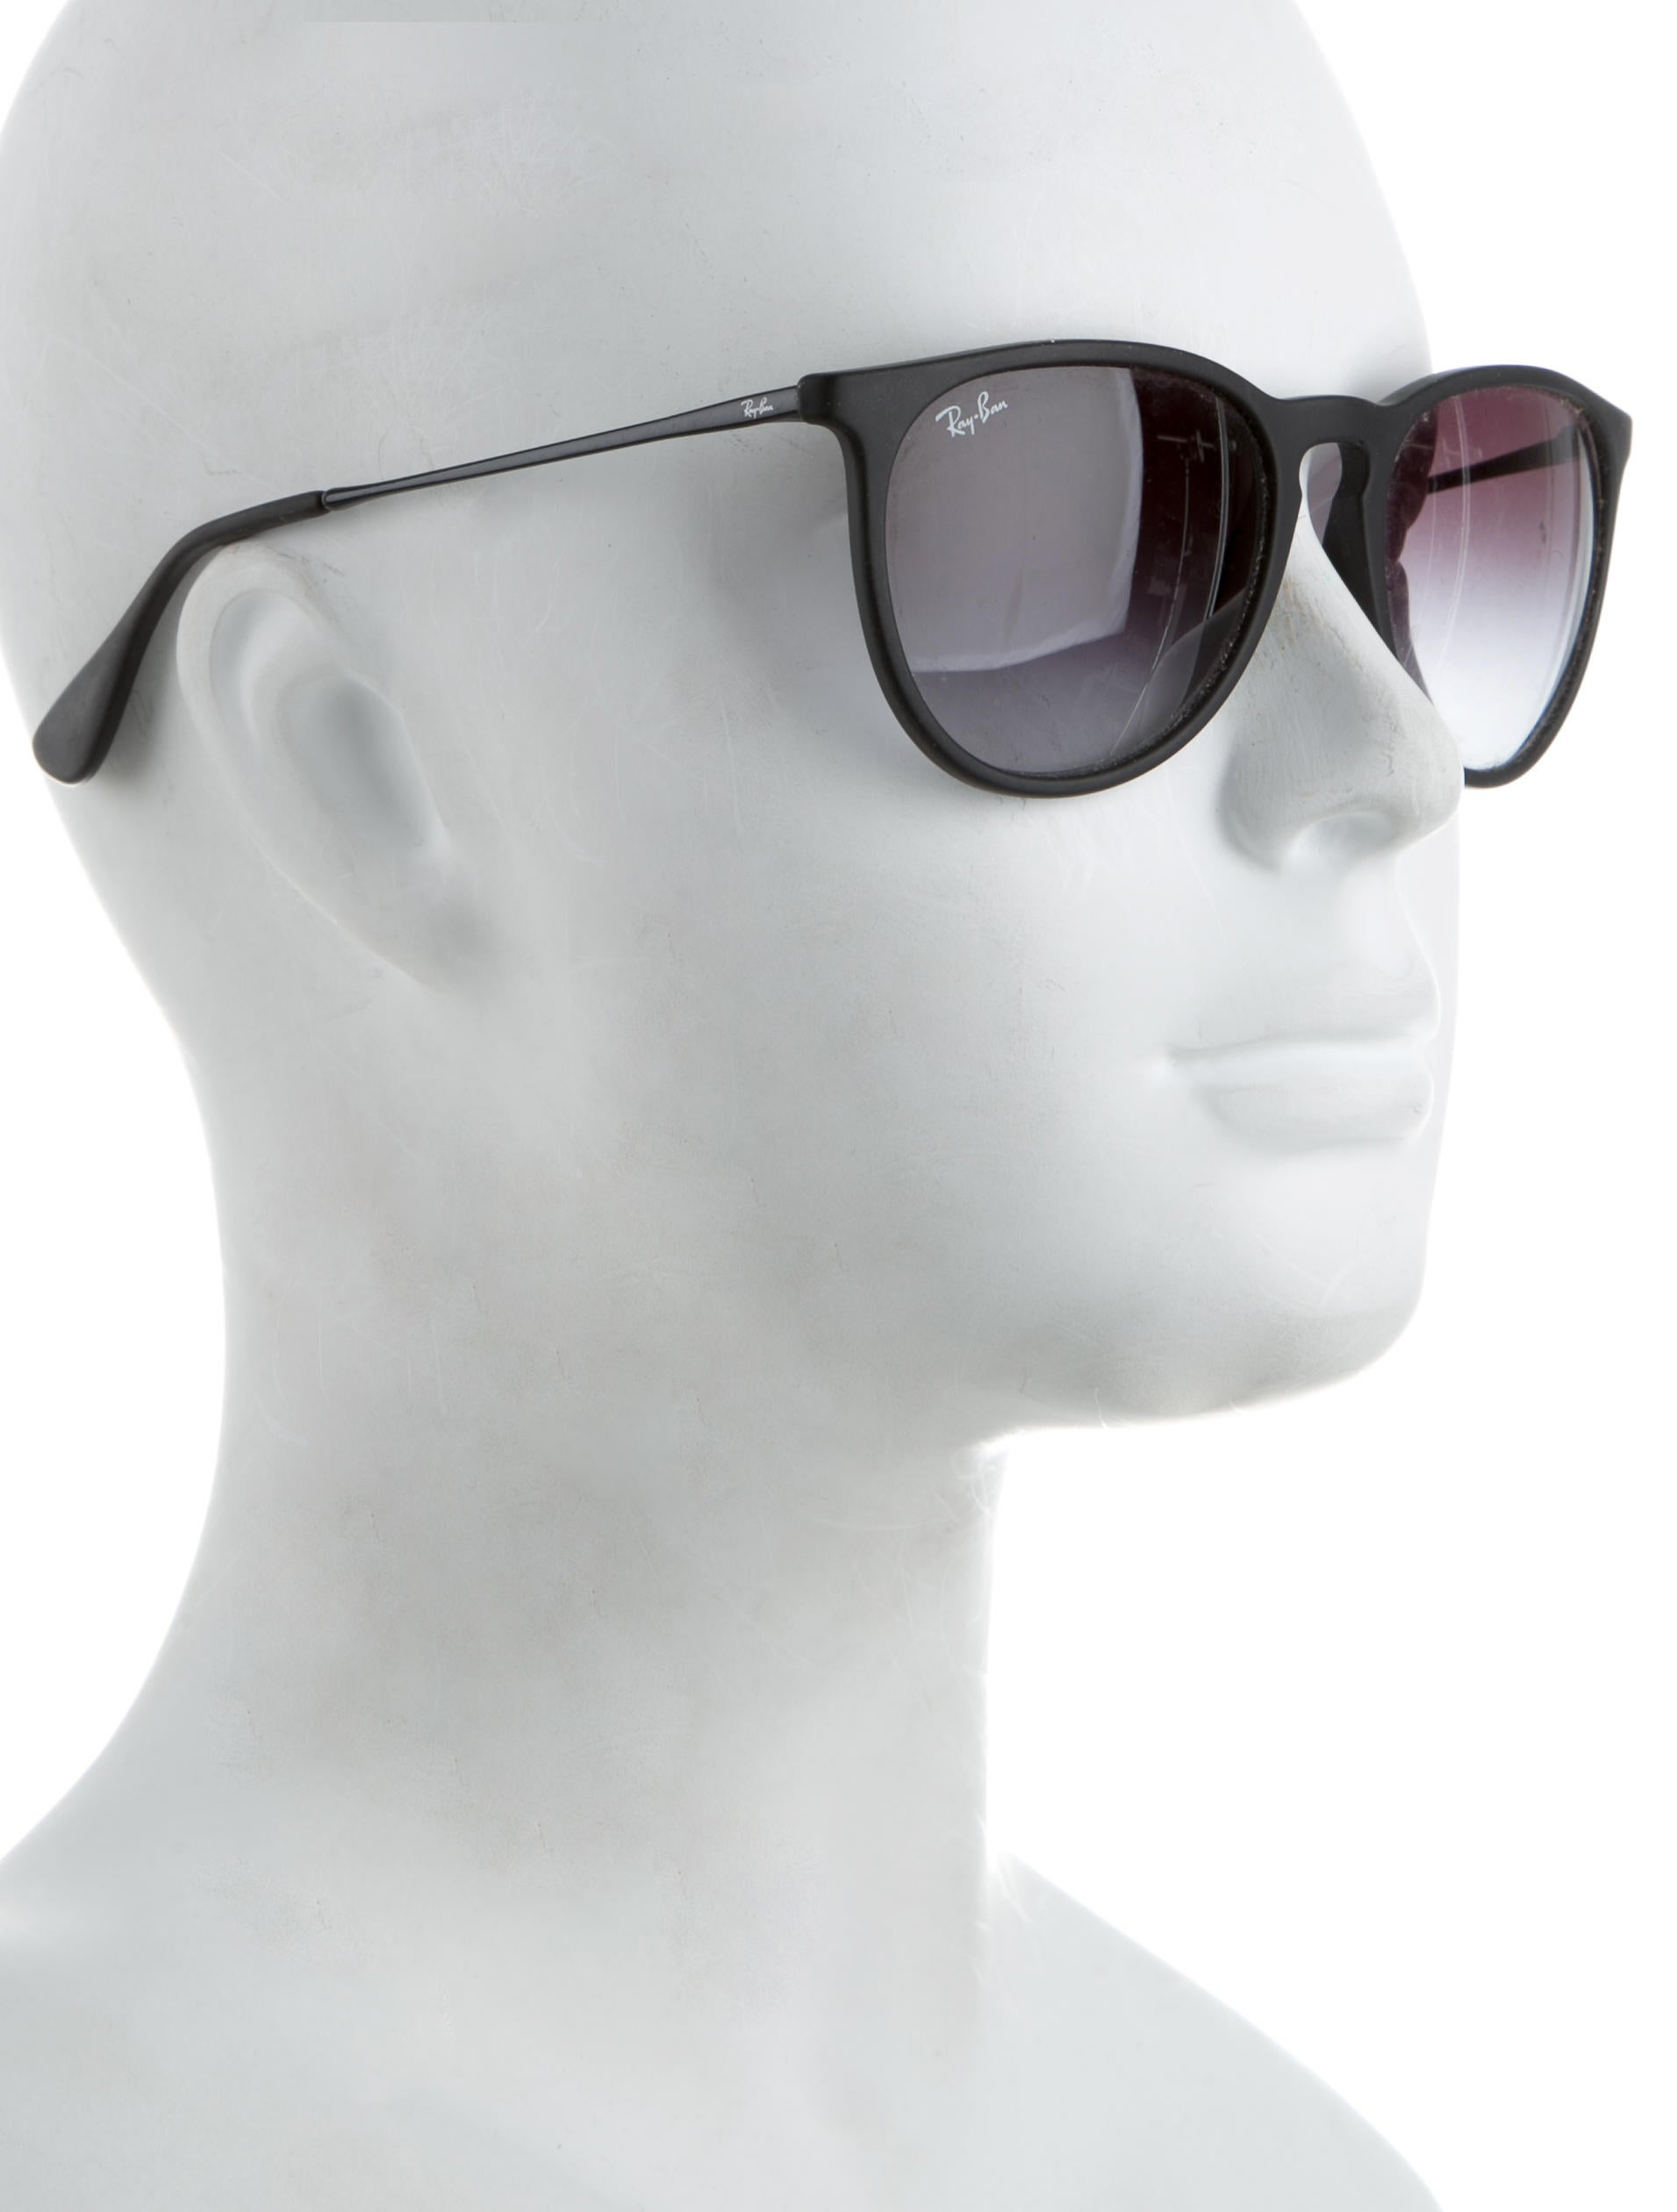 fc565ac9cb Clip On Sunglasses For Ray Ban Keyhole